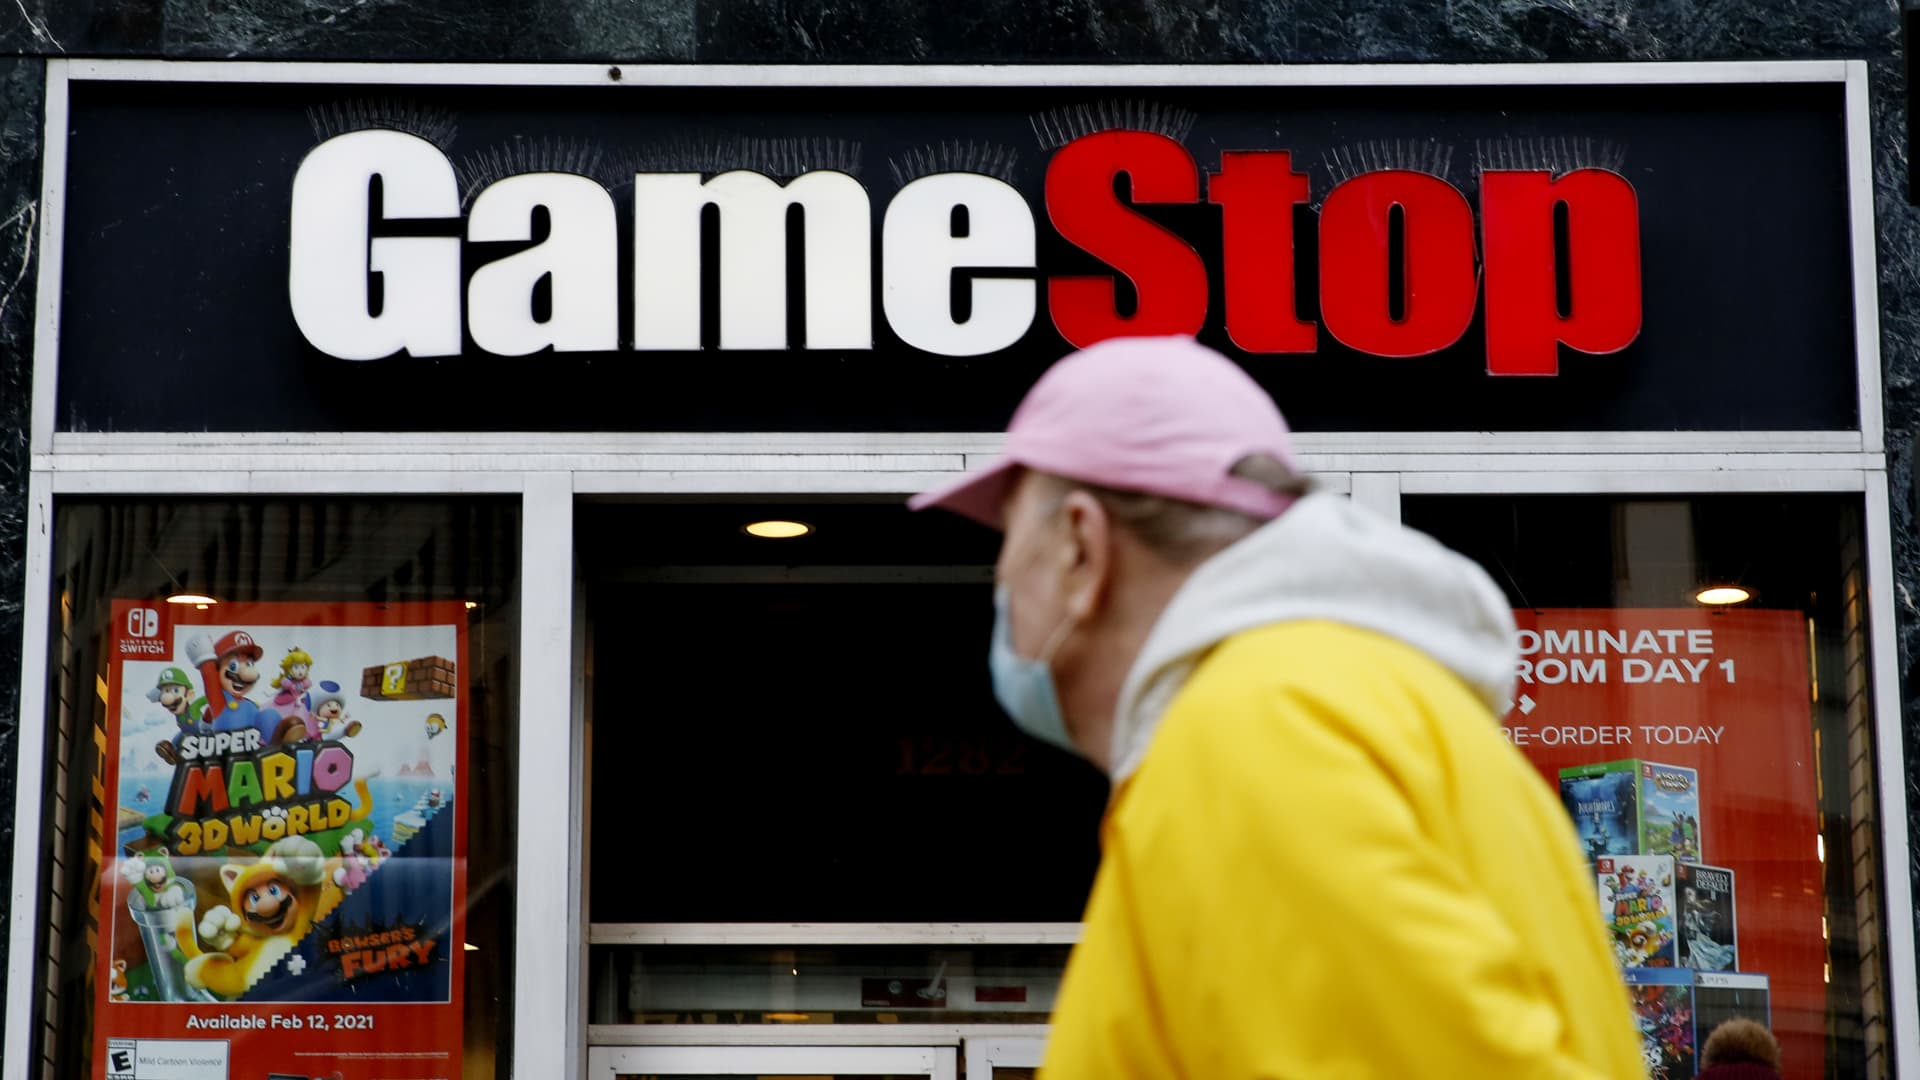 A man looks at GameStop at 6th Avenue on February 25, 2021 in New York.